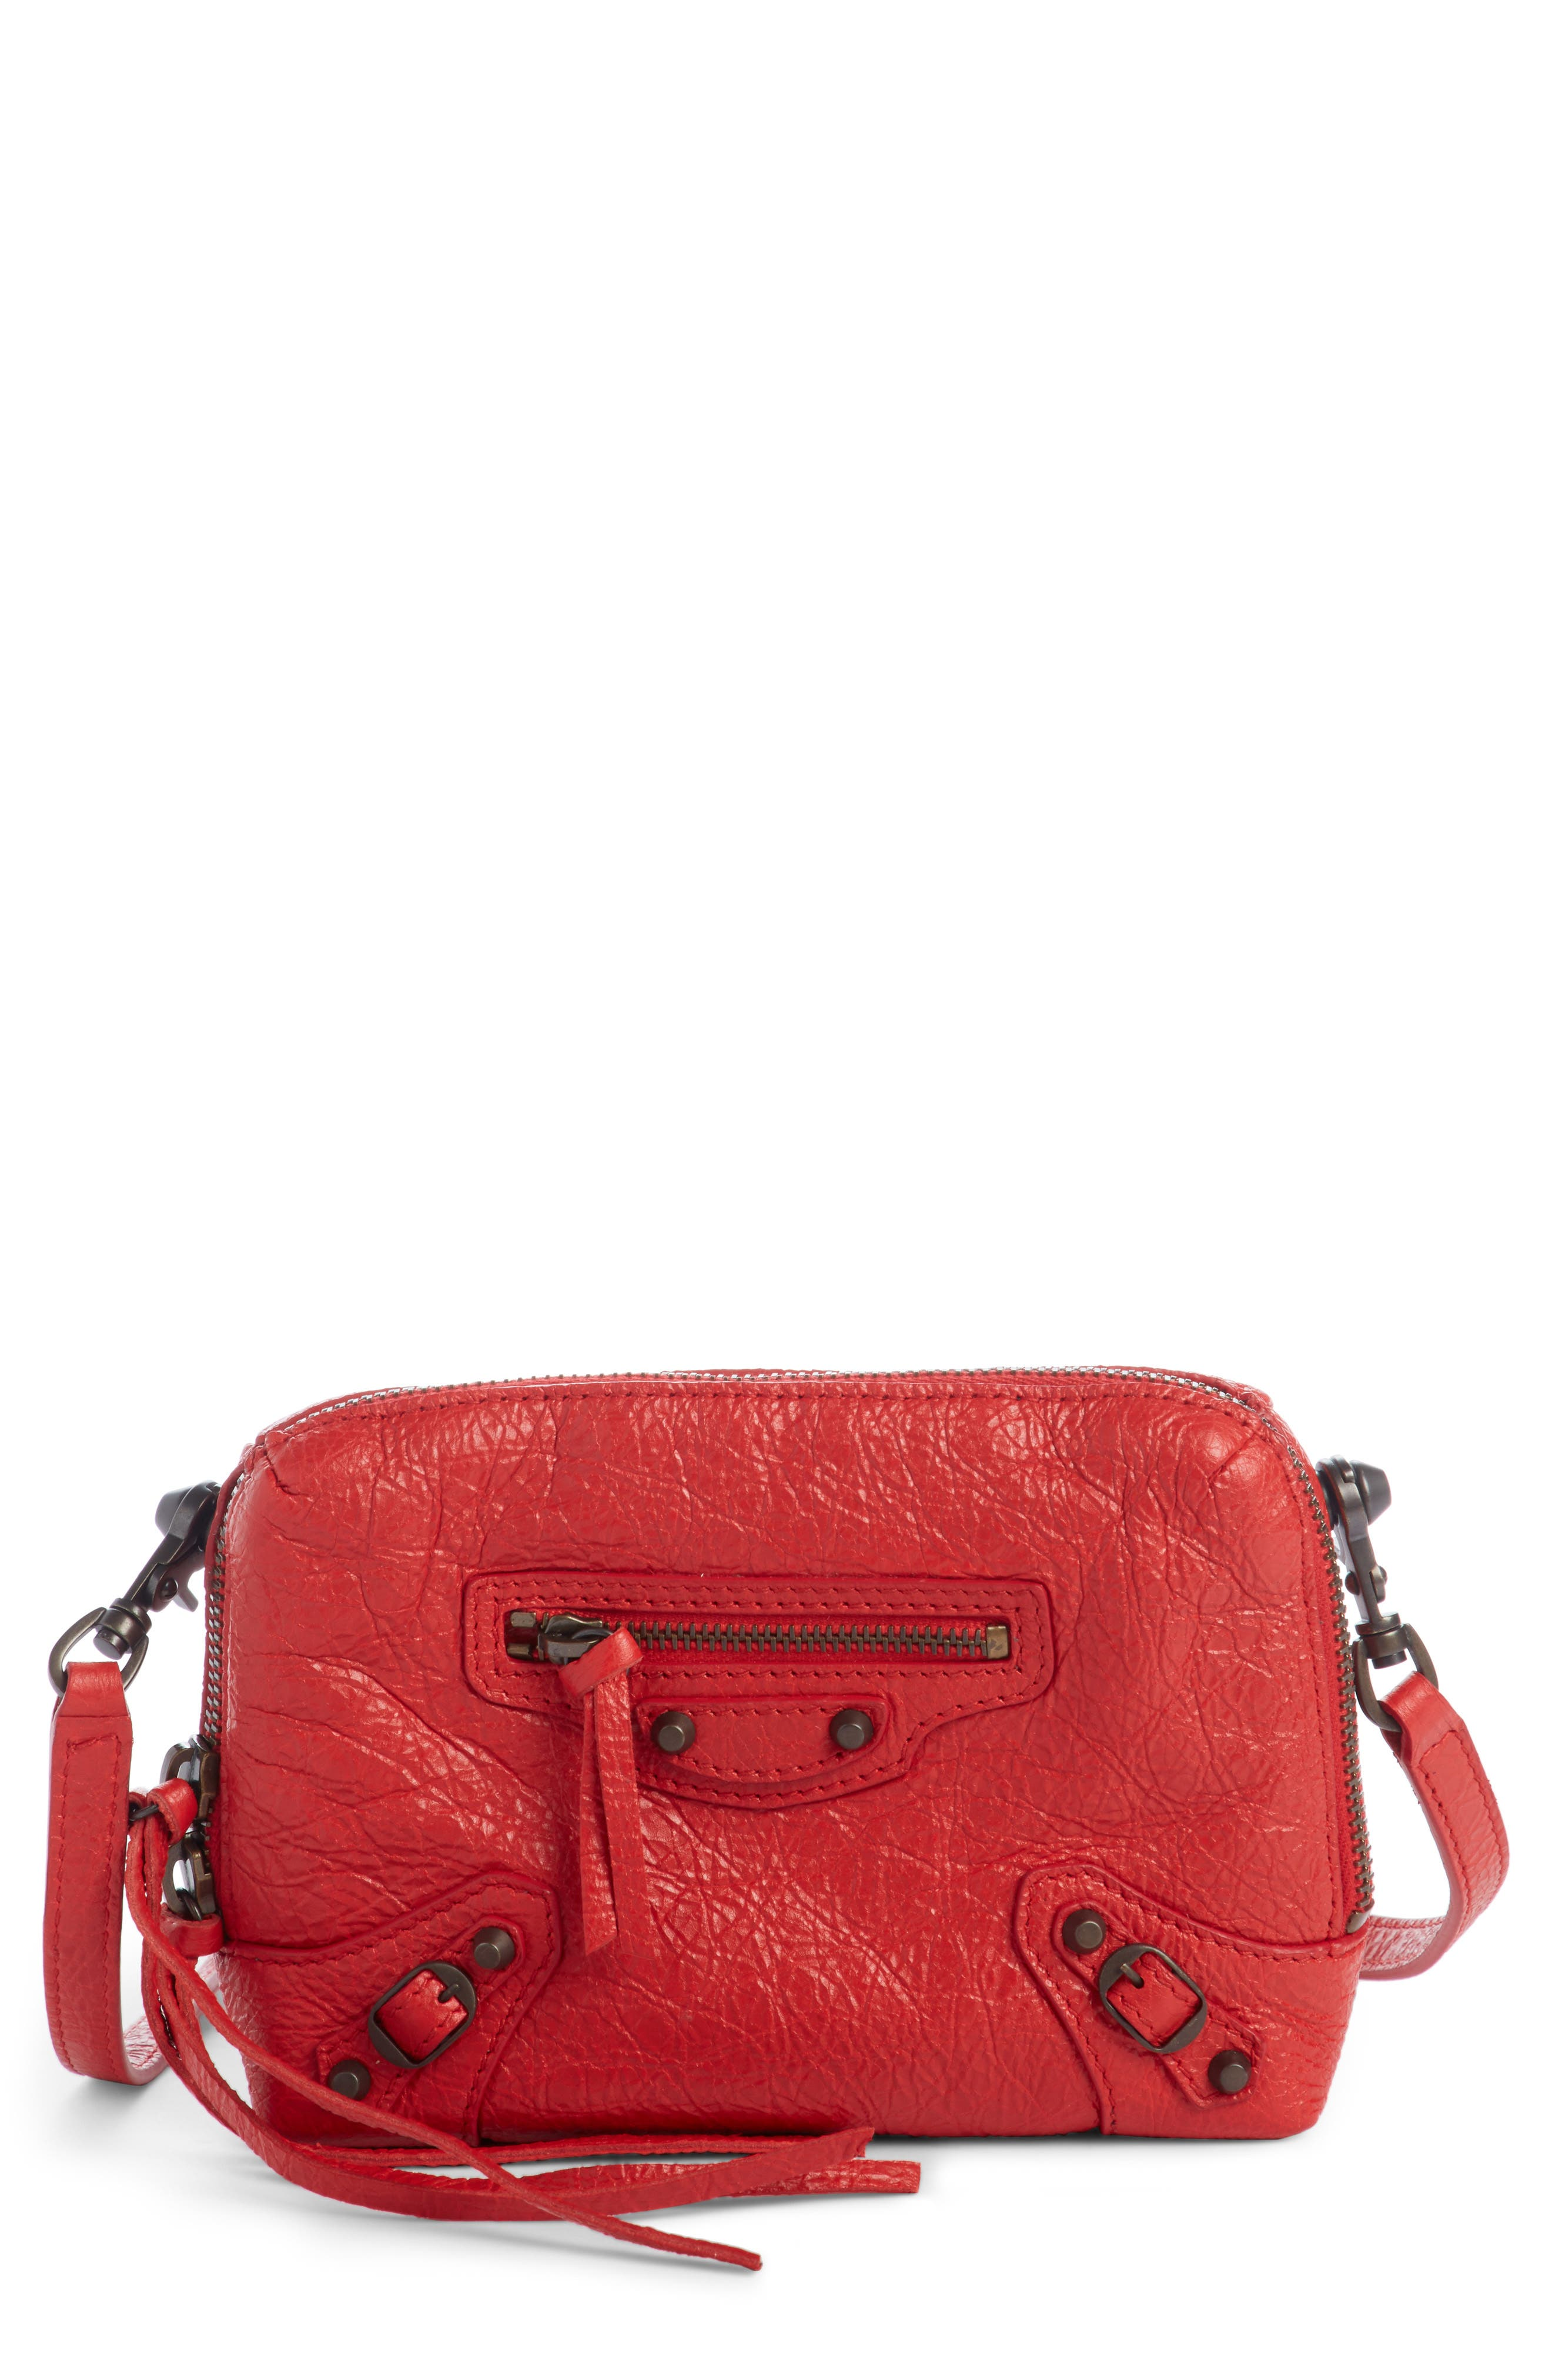 Extra Small Classic Reporter Leather Shoulder Bag,                             Main thumbnail 1, color,                             ROUGE TANGO